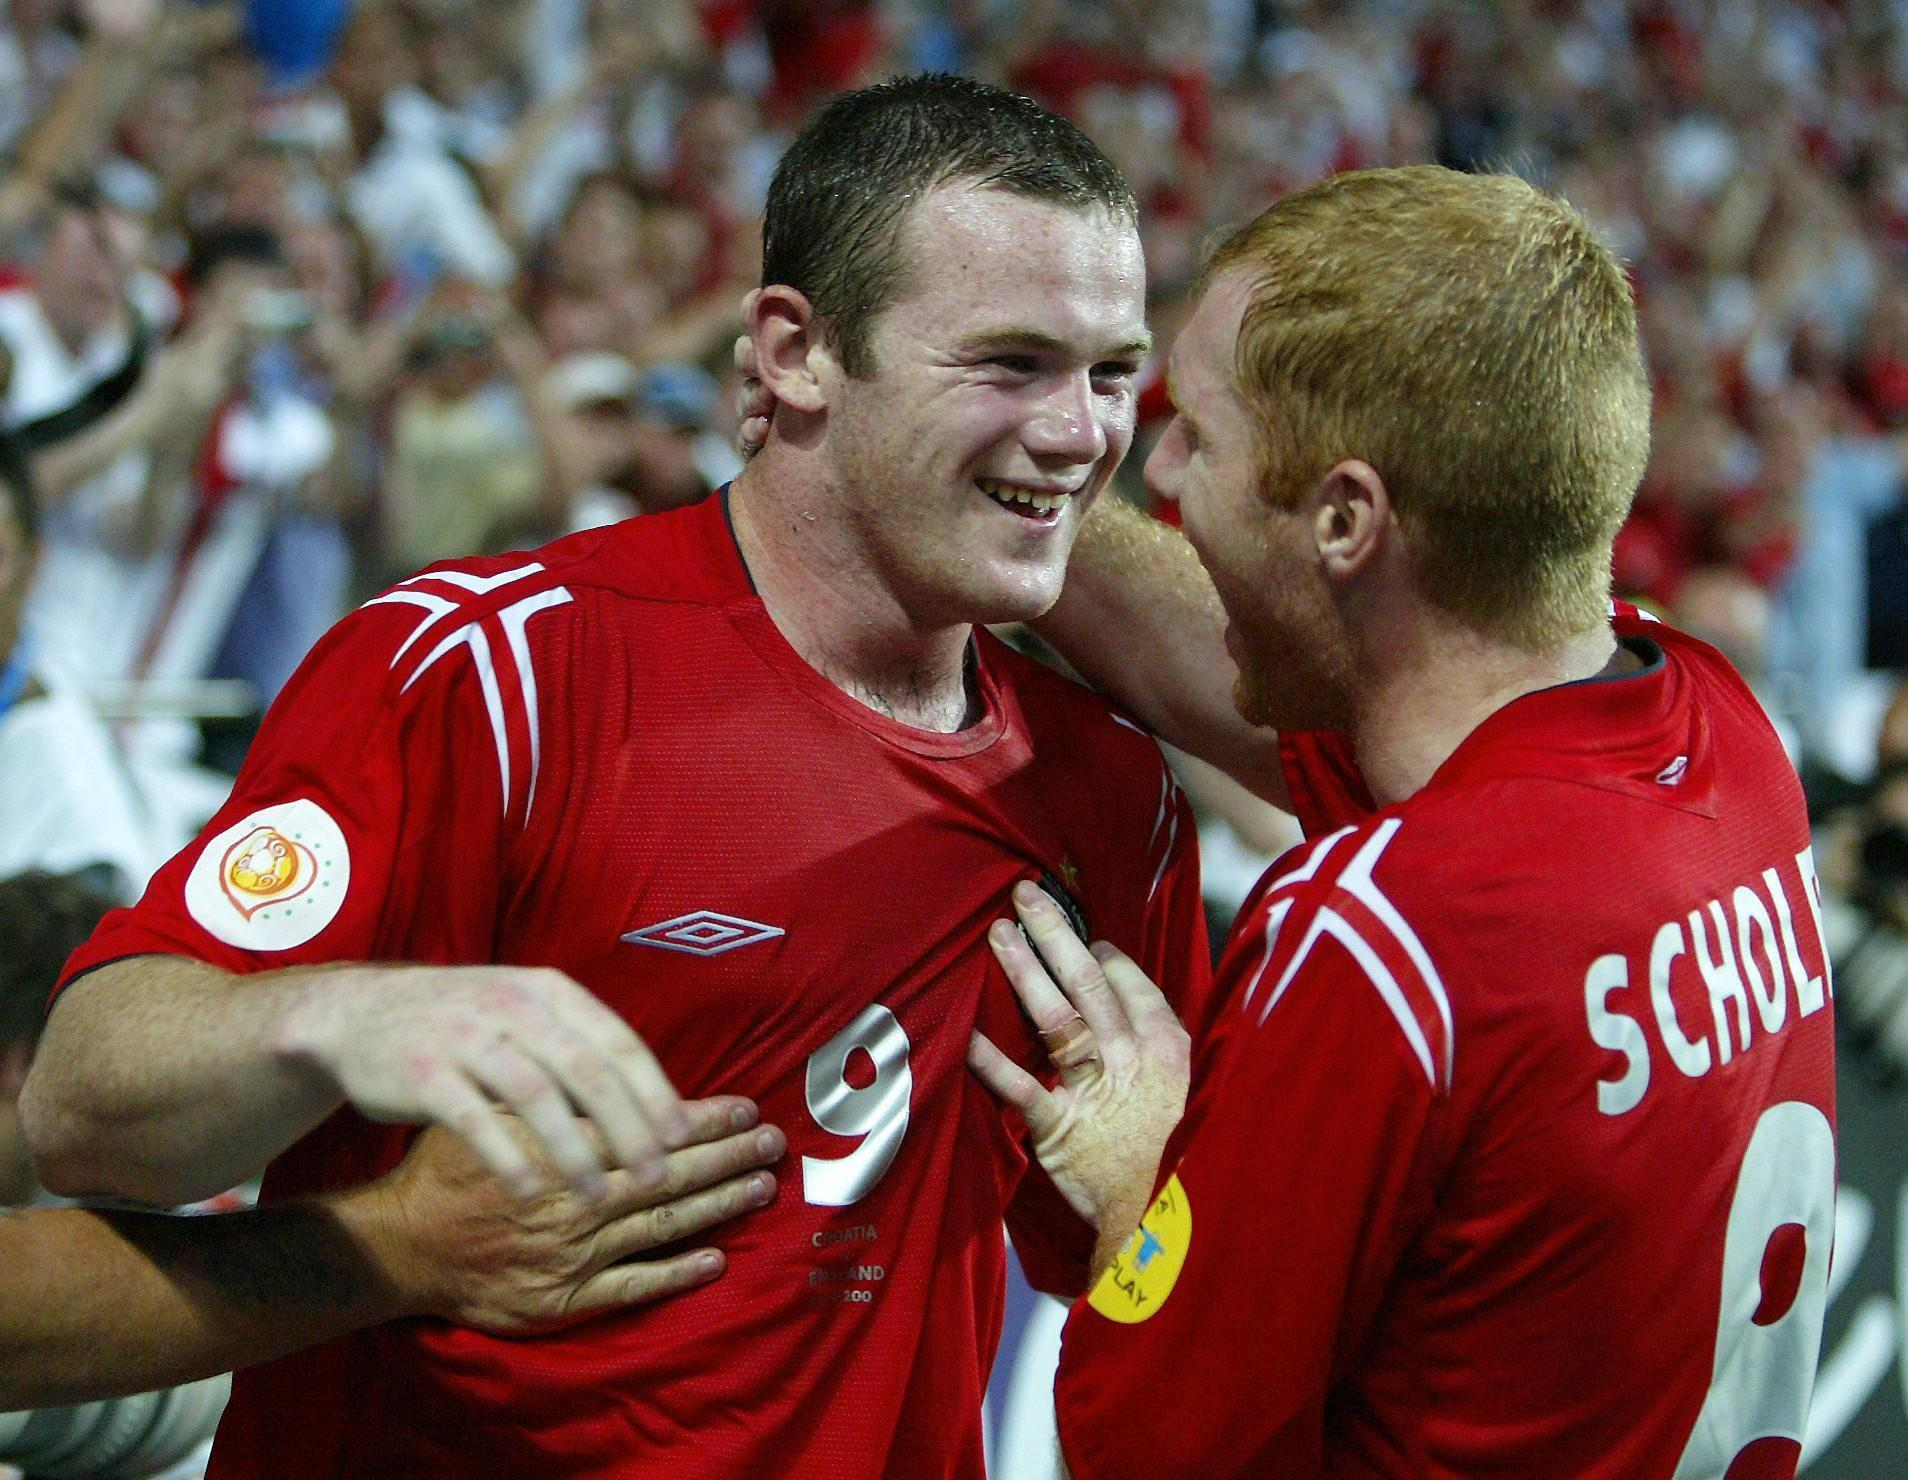 A youthful -looking Wayne Rooney would go on to finish the match against Croatia with a brace